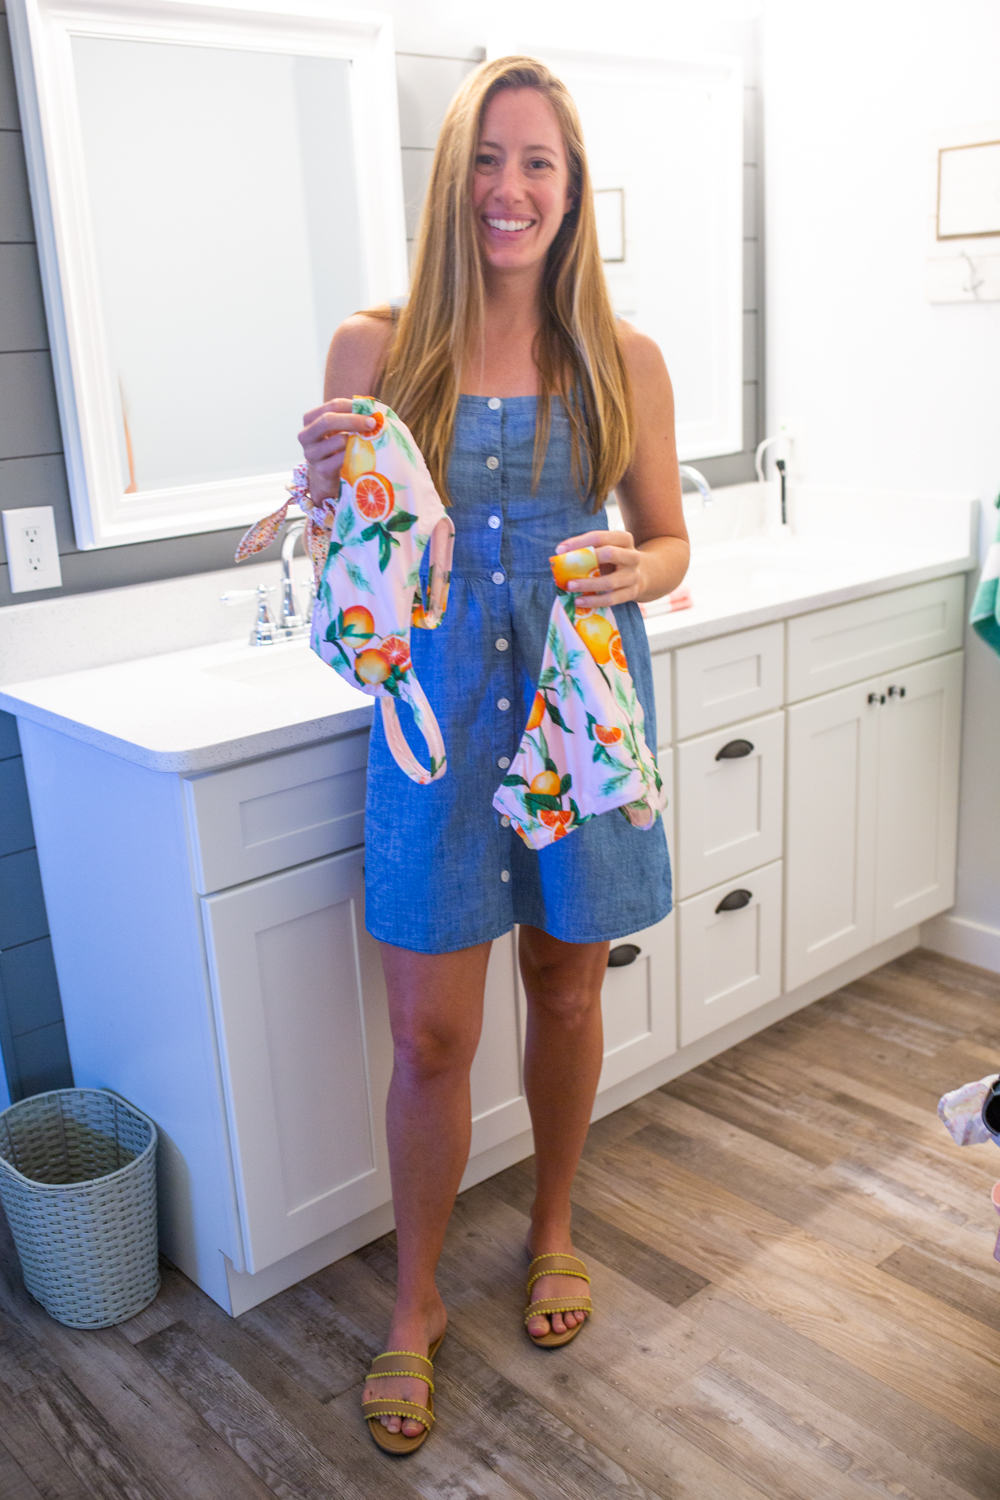 How to Wash and Care for Your Swimsuits / How to Wash a Swimsuit / How to Care for a Swimsuit / How to Make Swimwear Last Longer - Sunshine Style, A Florida Fashion and LIfestyle Blog